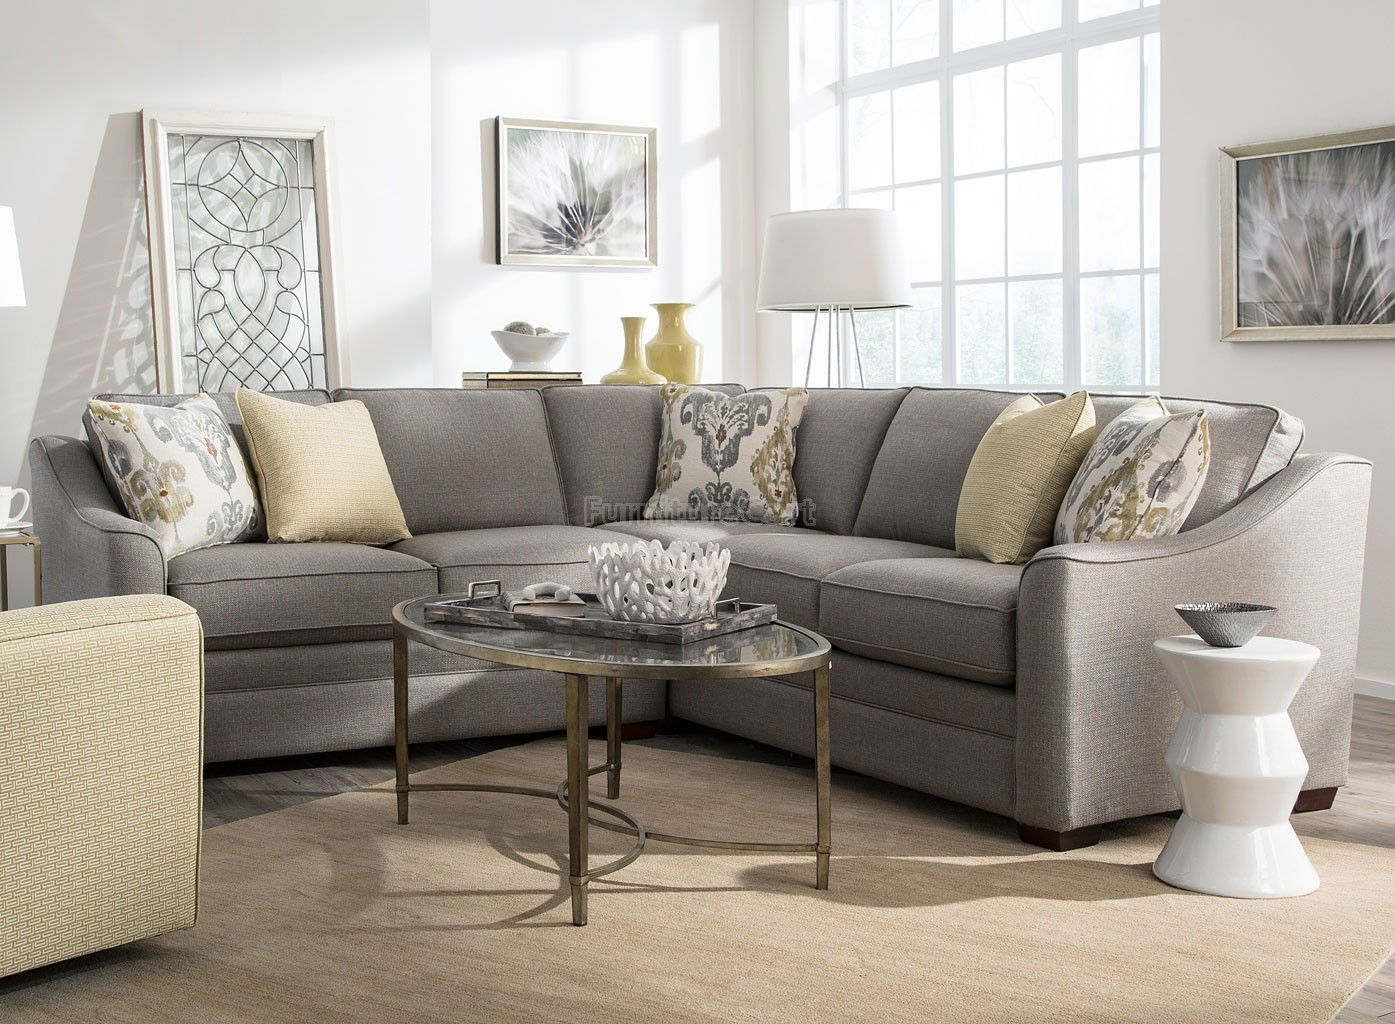 Custom Sectional Sofa Chicago Patio Sets Canada Sugarshack Right Facing Living Rooms